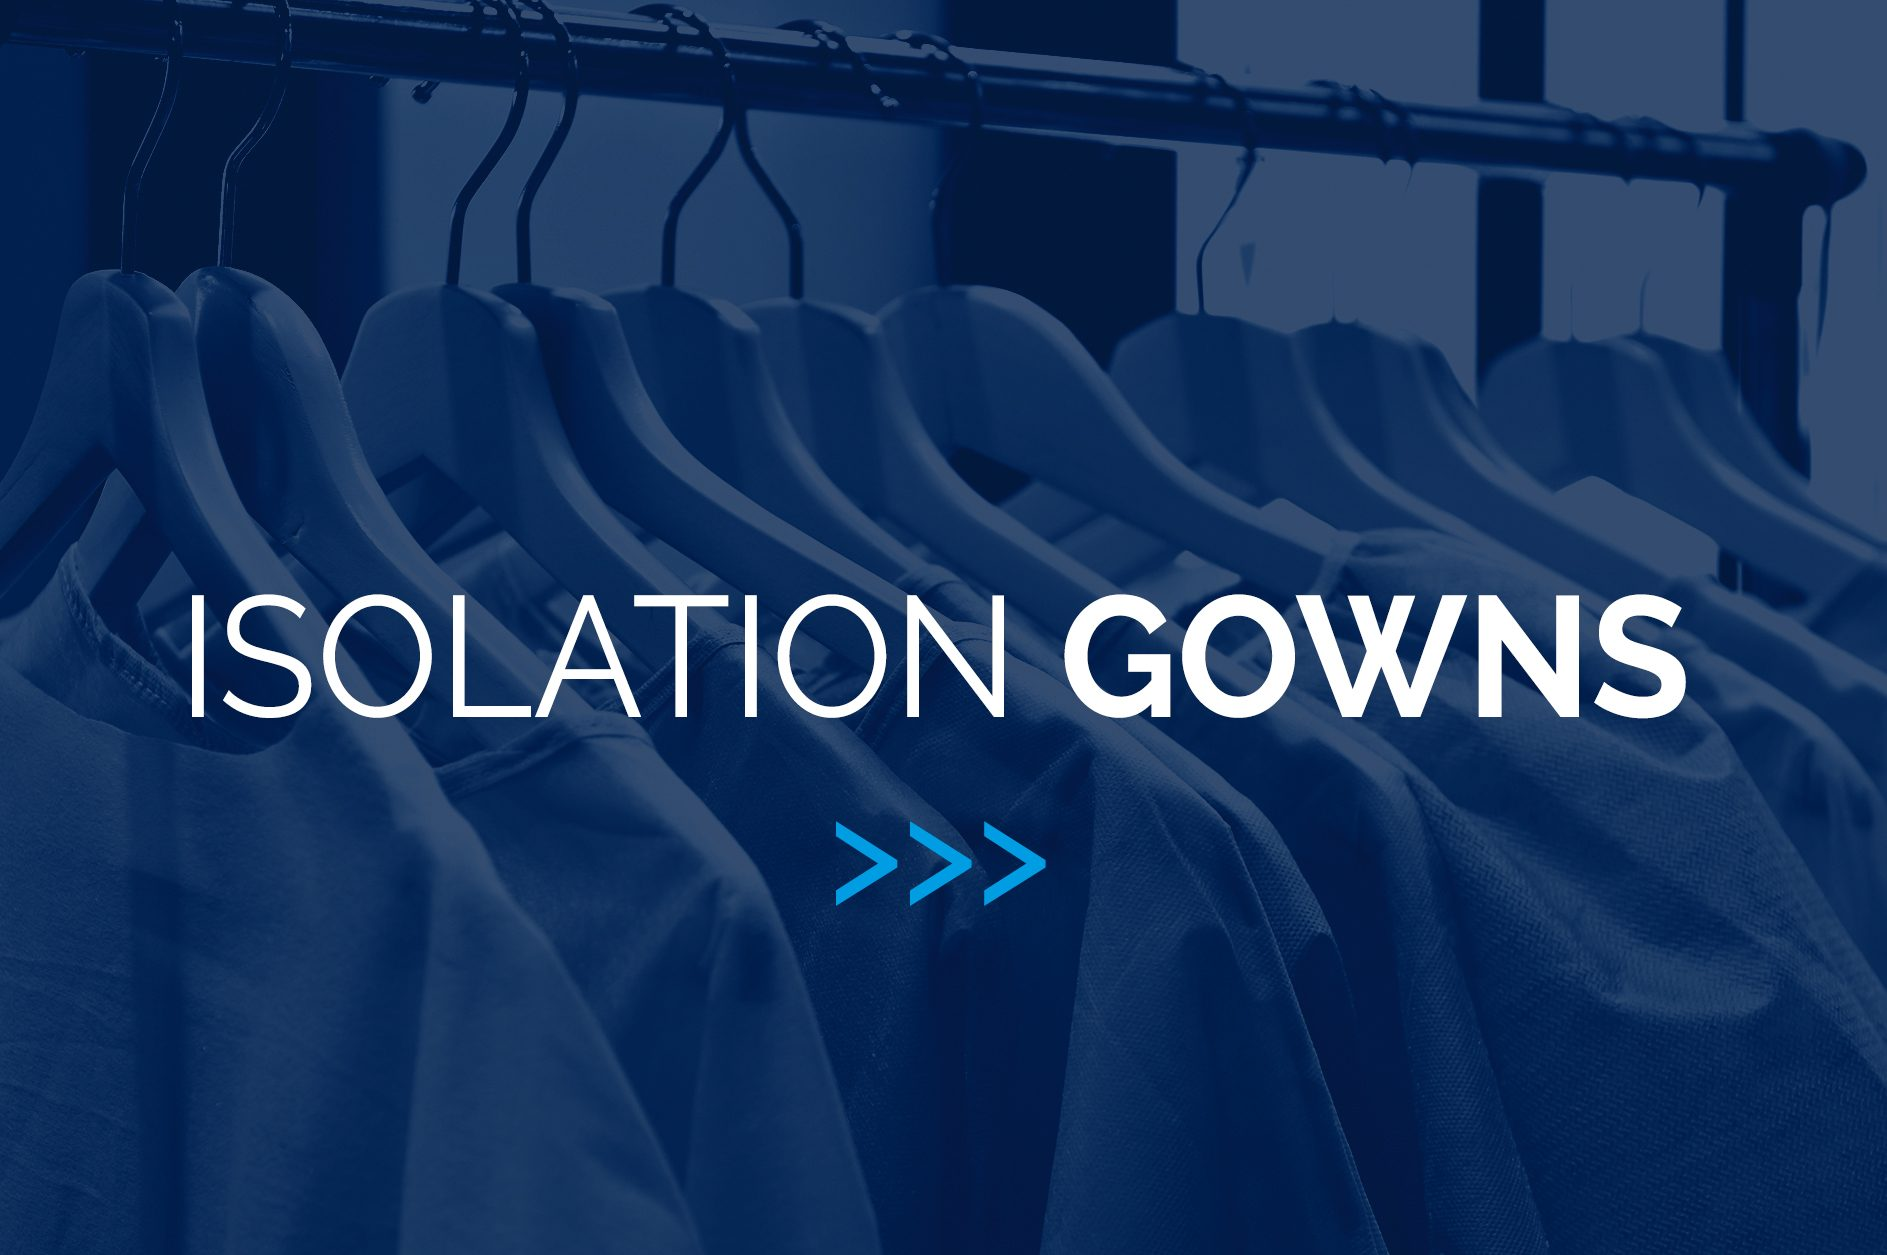 Mecial Isolation Gowns